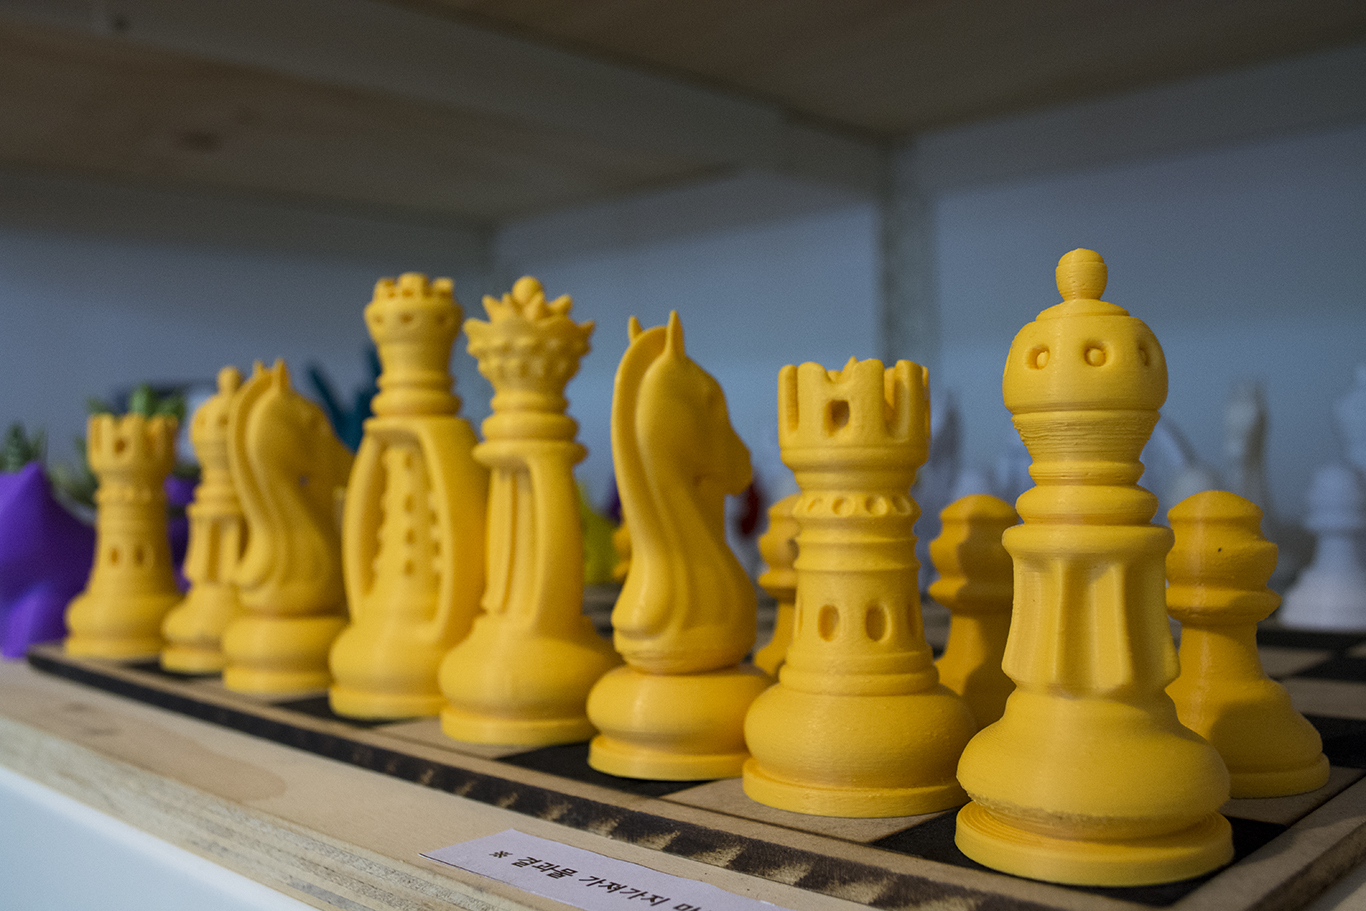 A set of 3D printed chess pieces on display in the Content Korea lab in Daehangno, Seoul.(CHRISTOPHER CAMERON/THE STATESMAN)